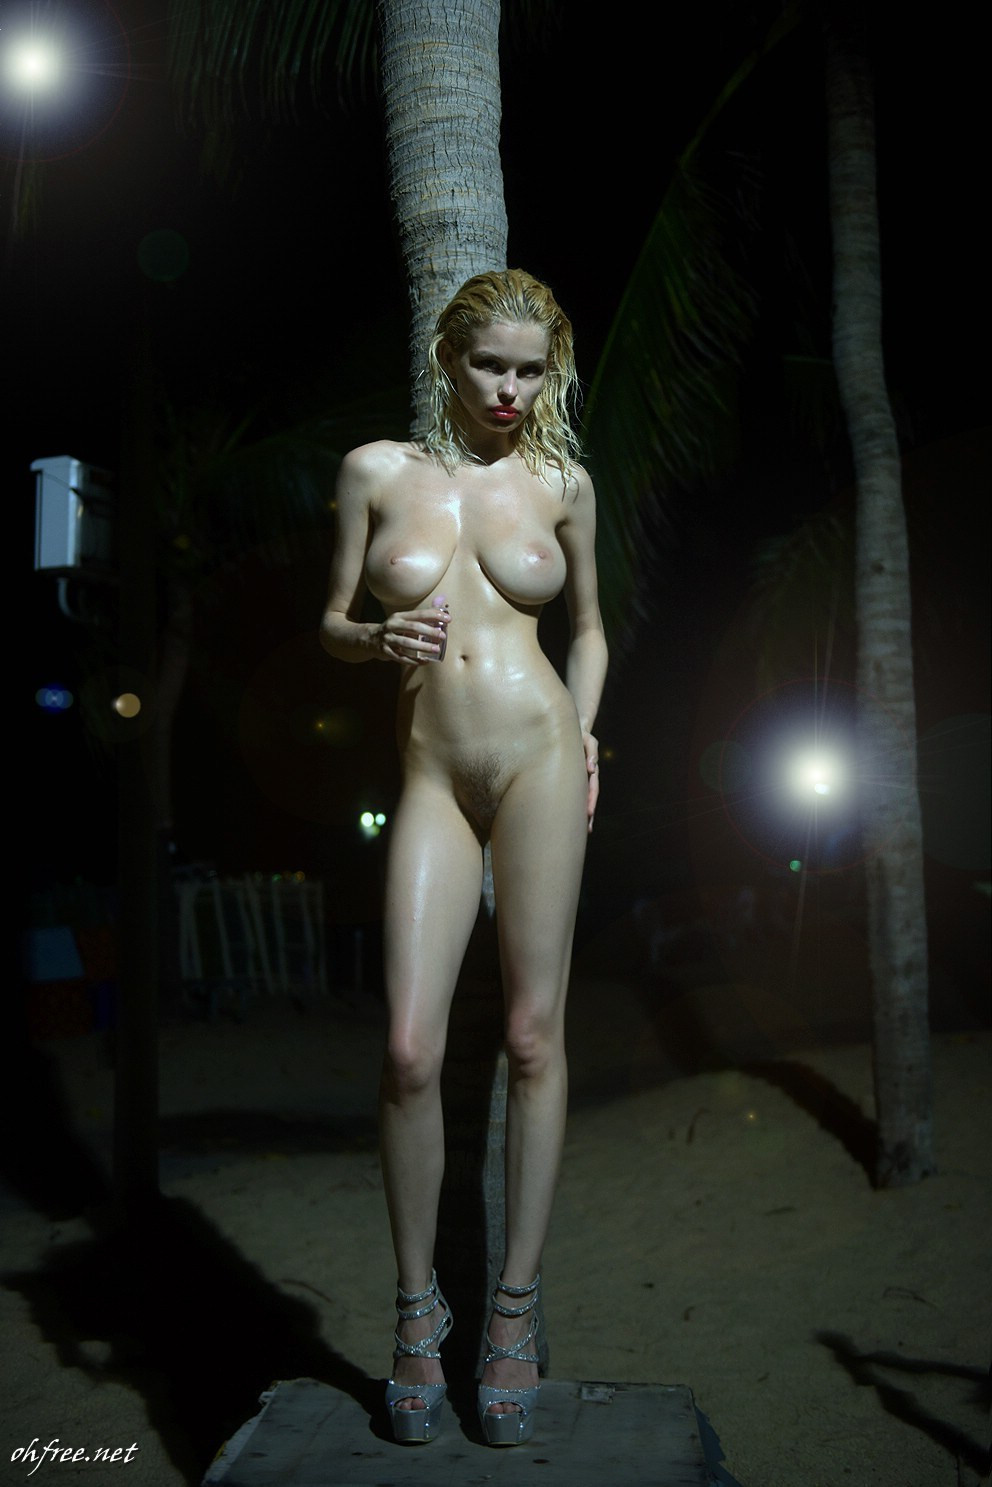 nude (39 photo), Hot Celebrity pic